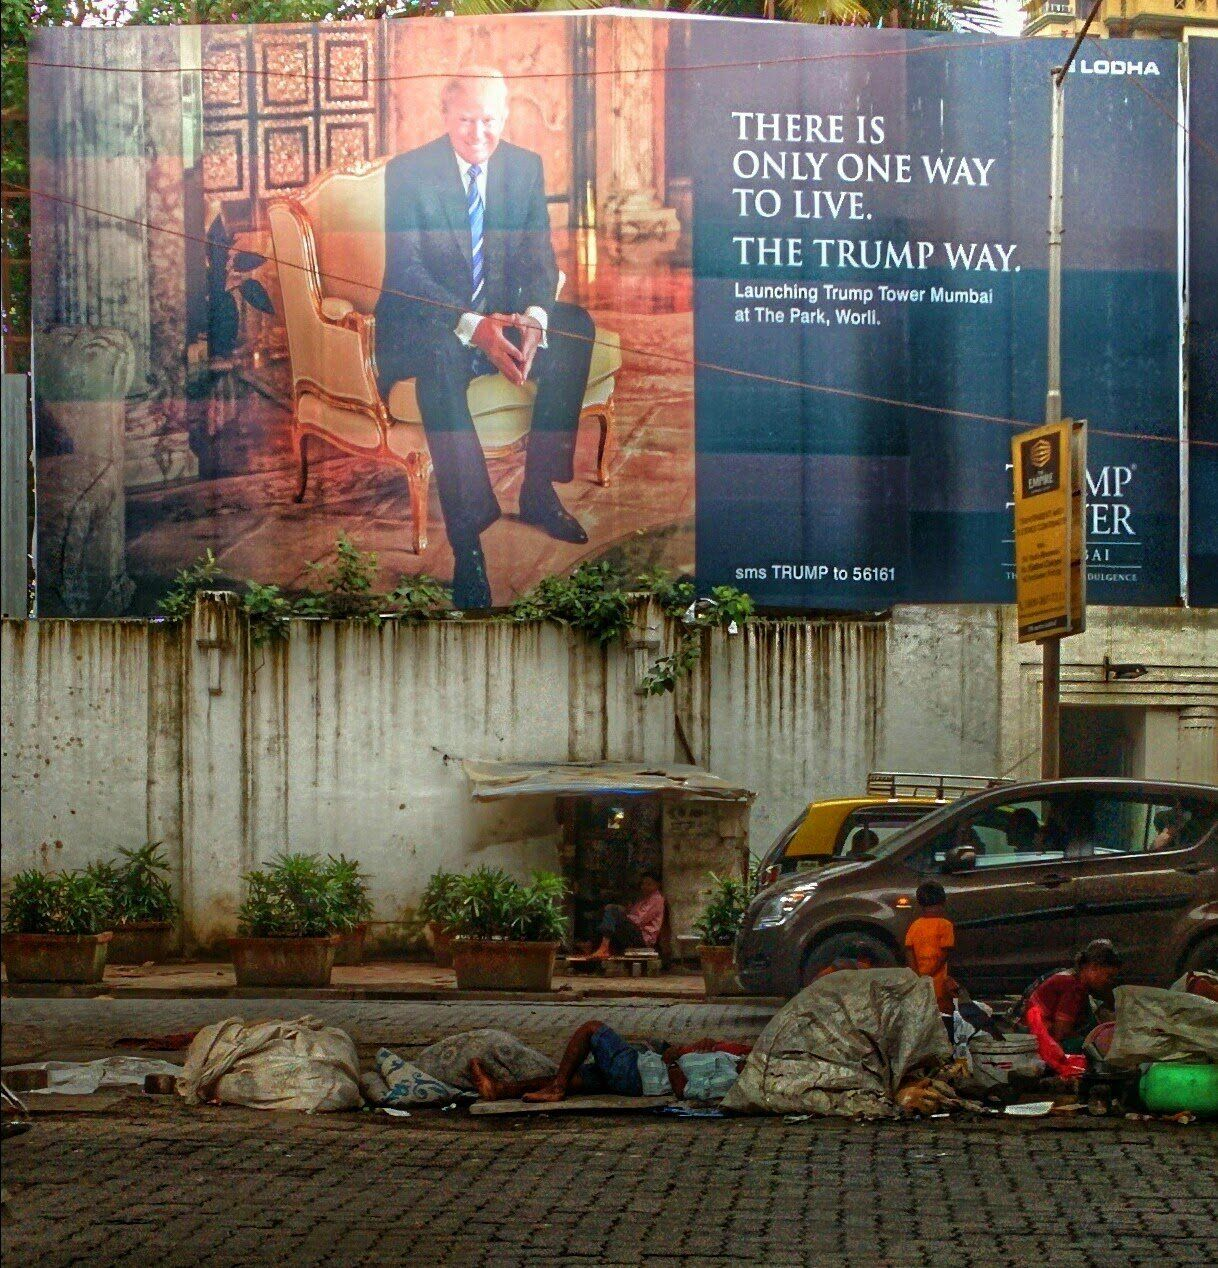 Photo of Trump billboard and poor Indian children, by Paul Needham